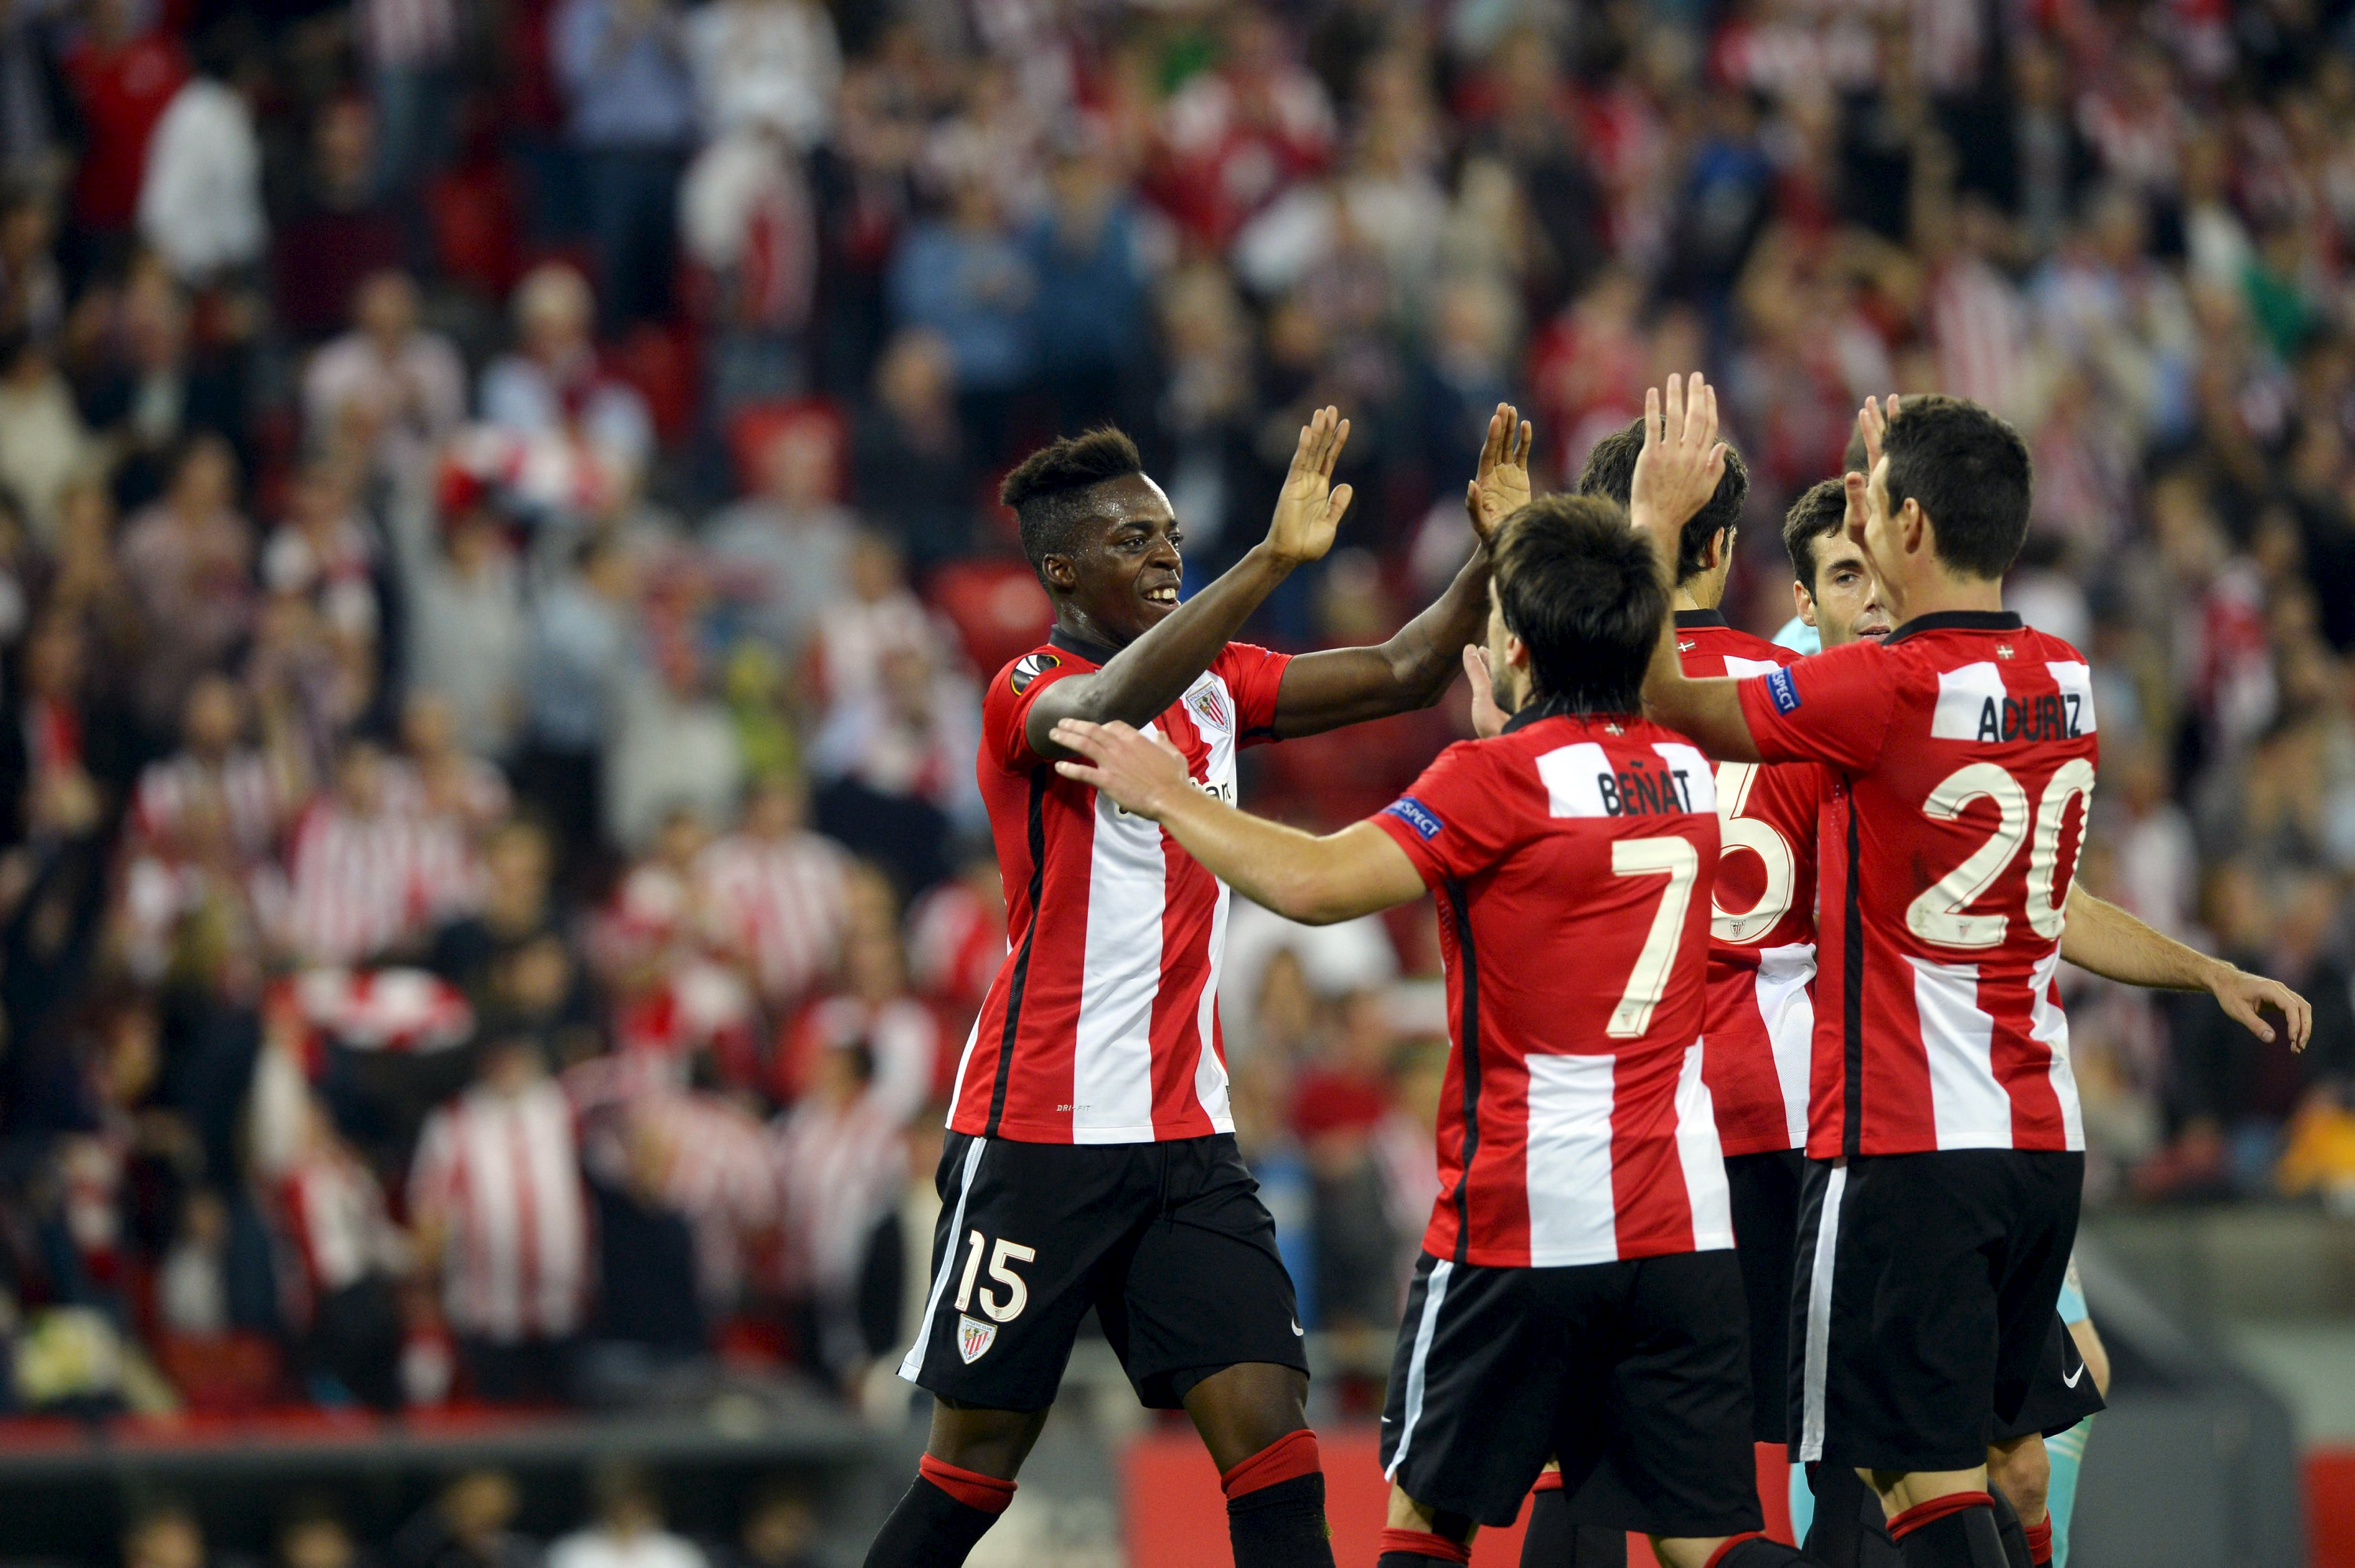 Athletic Bilbao's Inaki Williams (L) celebrates a goal with teammate Aritz Aduriz during their Europa League Group L soccer match against Partizan at San Mames stadium in Bilbao, northern Spain, November 5, 2015. REUTERS/Vincent West Picture Supplied by Action Images